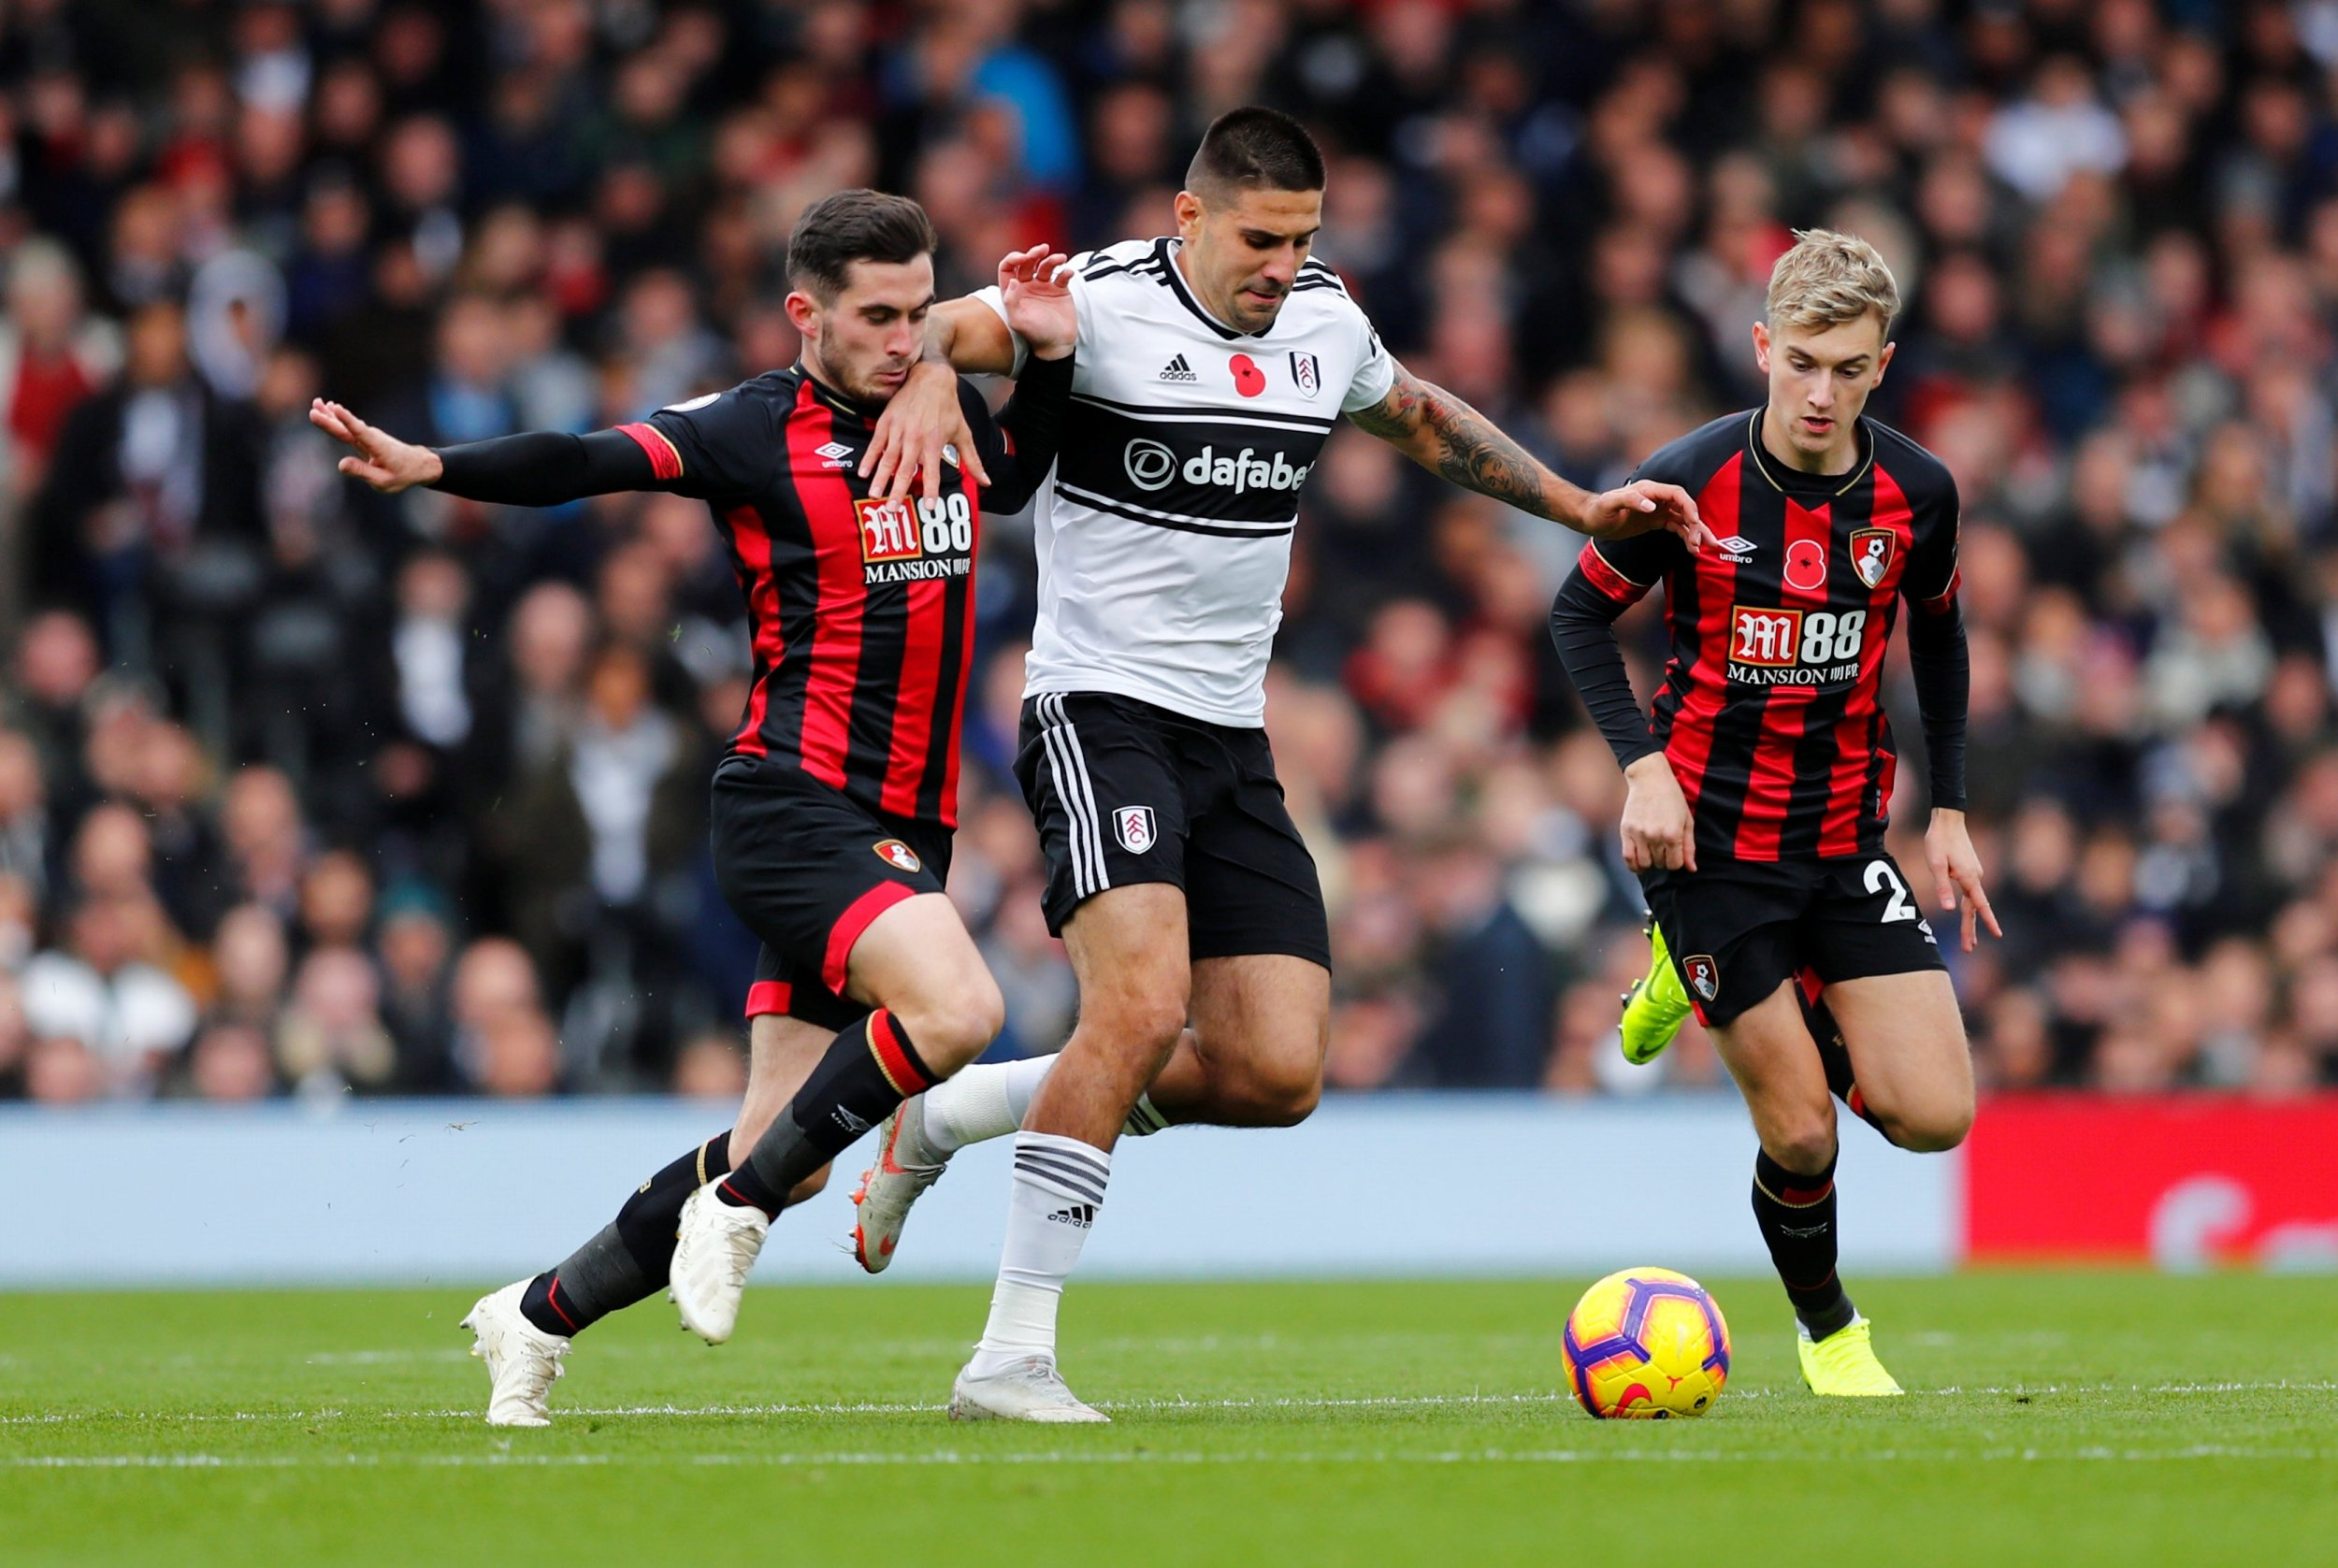 Soi kèo Brighton vs Bournemouth